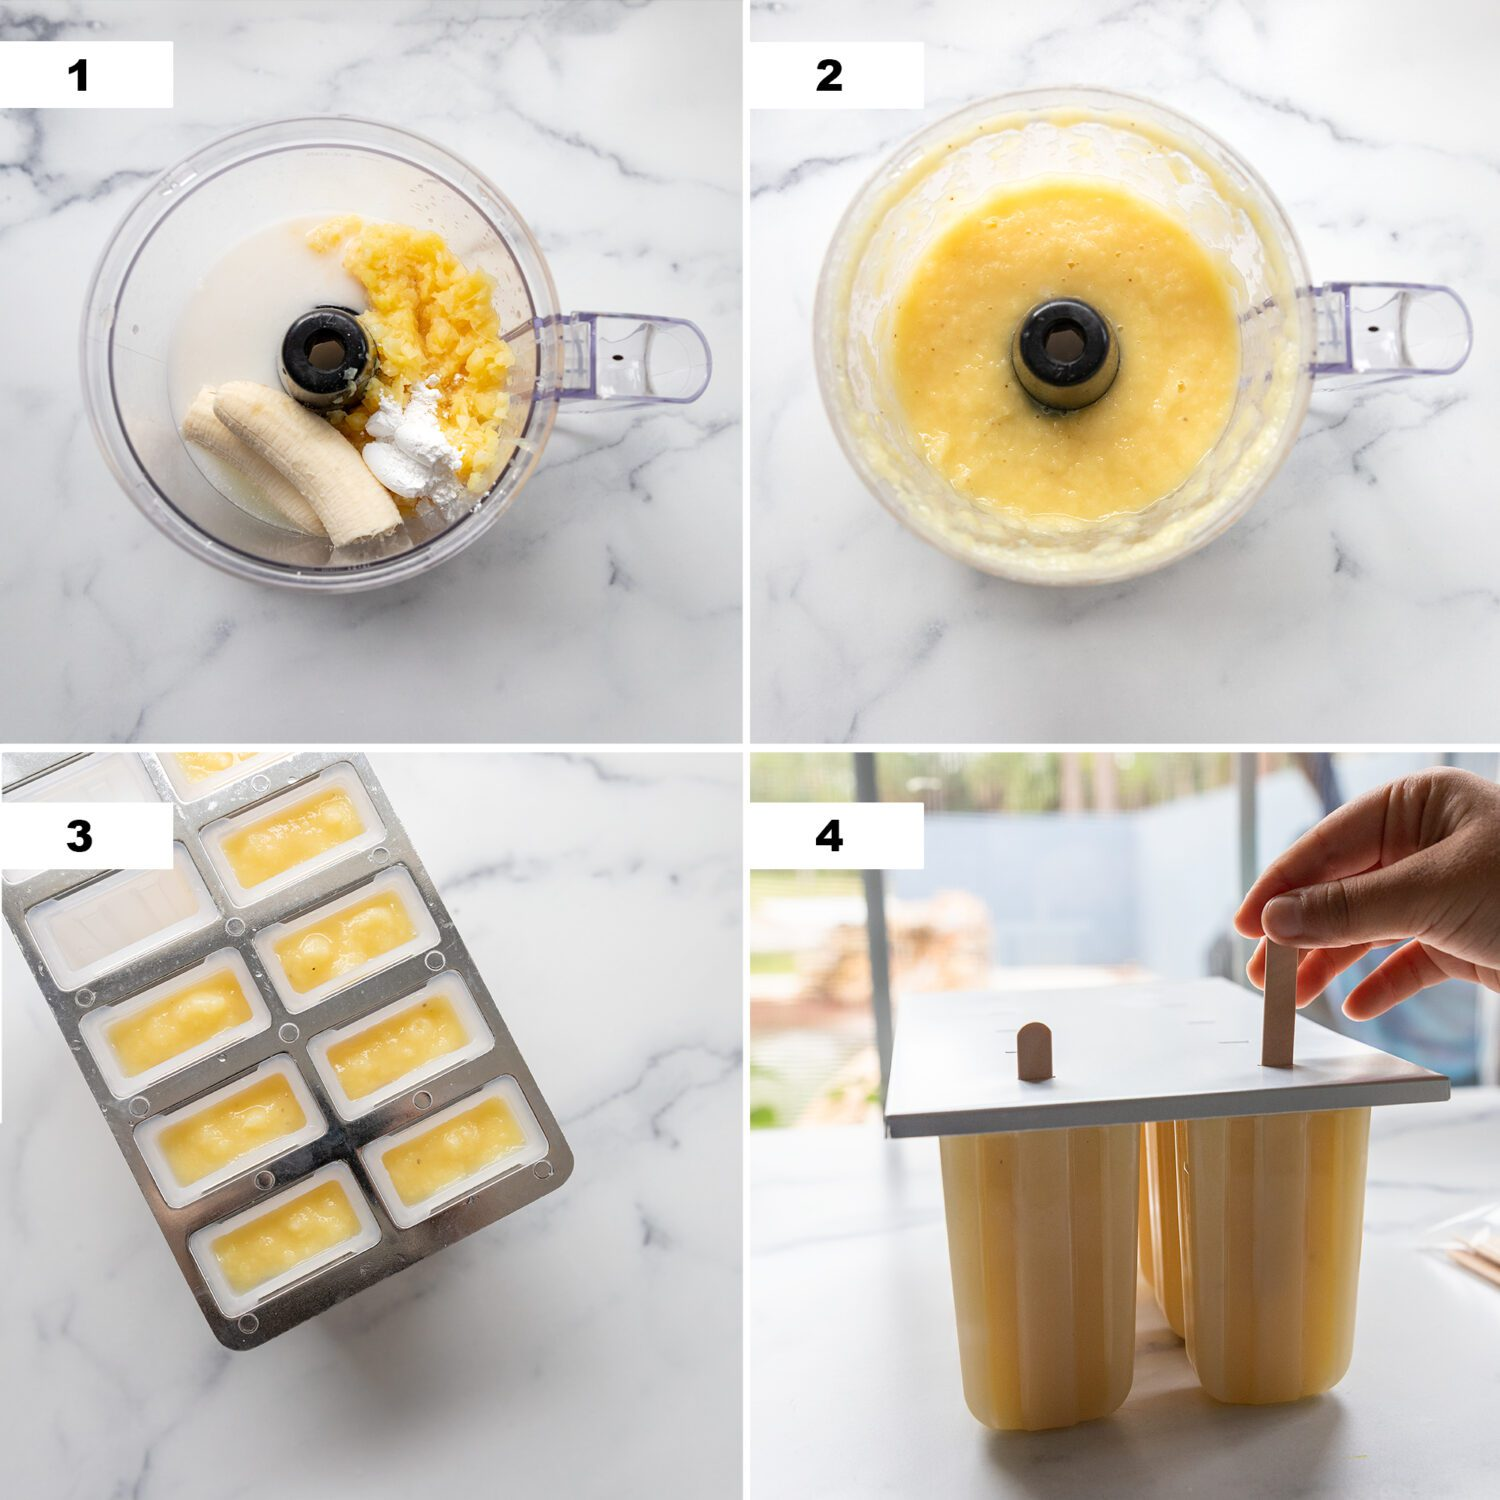 steps to make dole whip popsicles